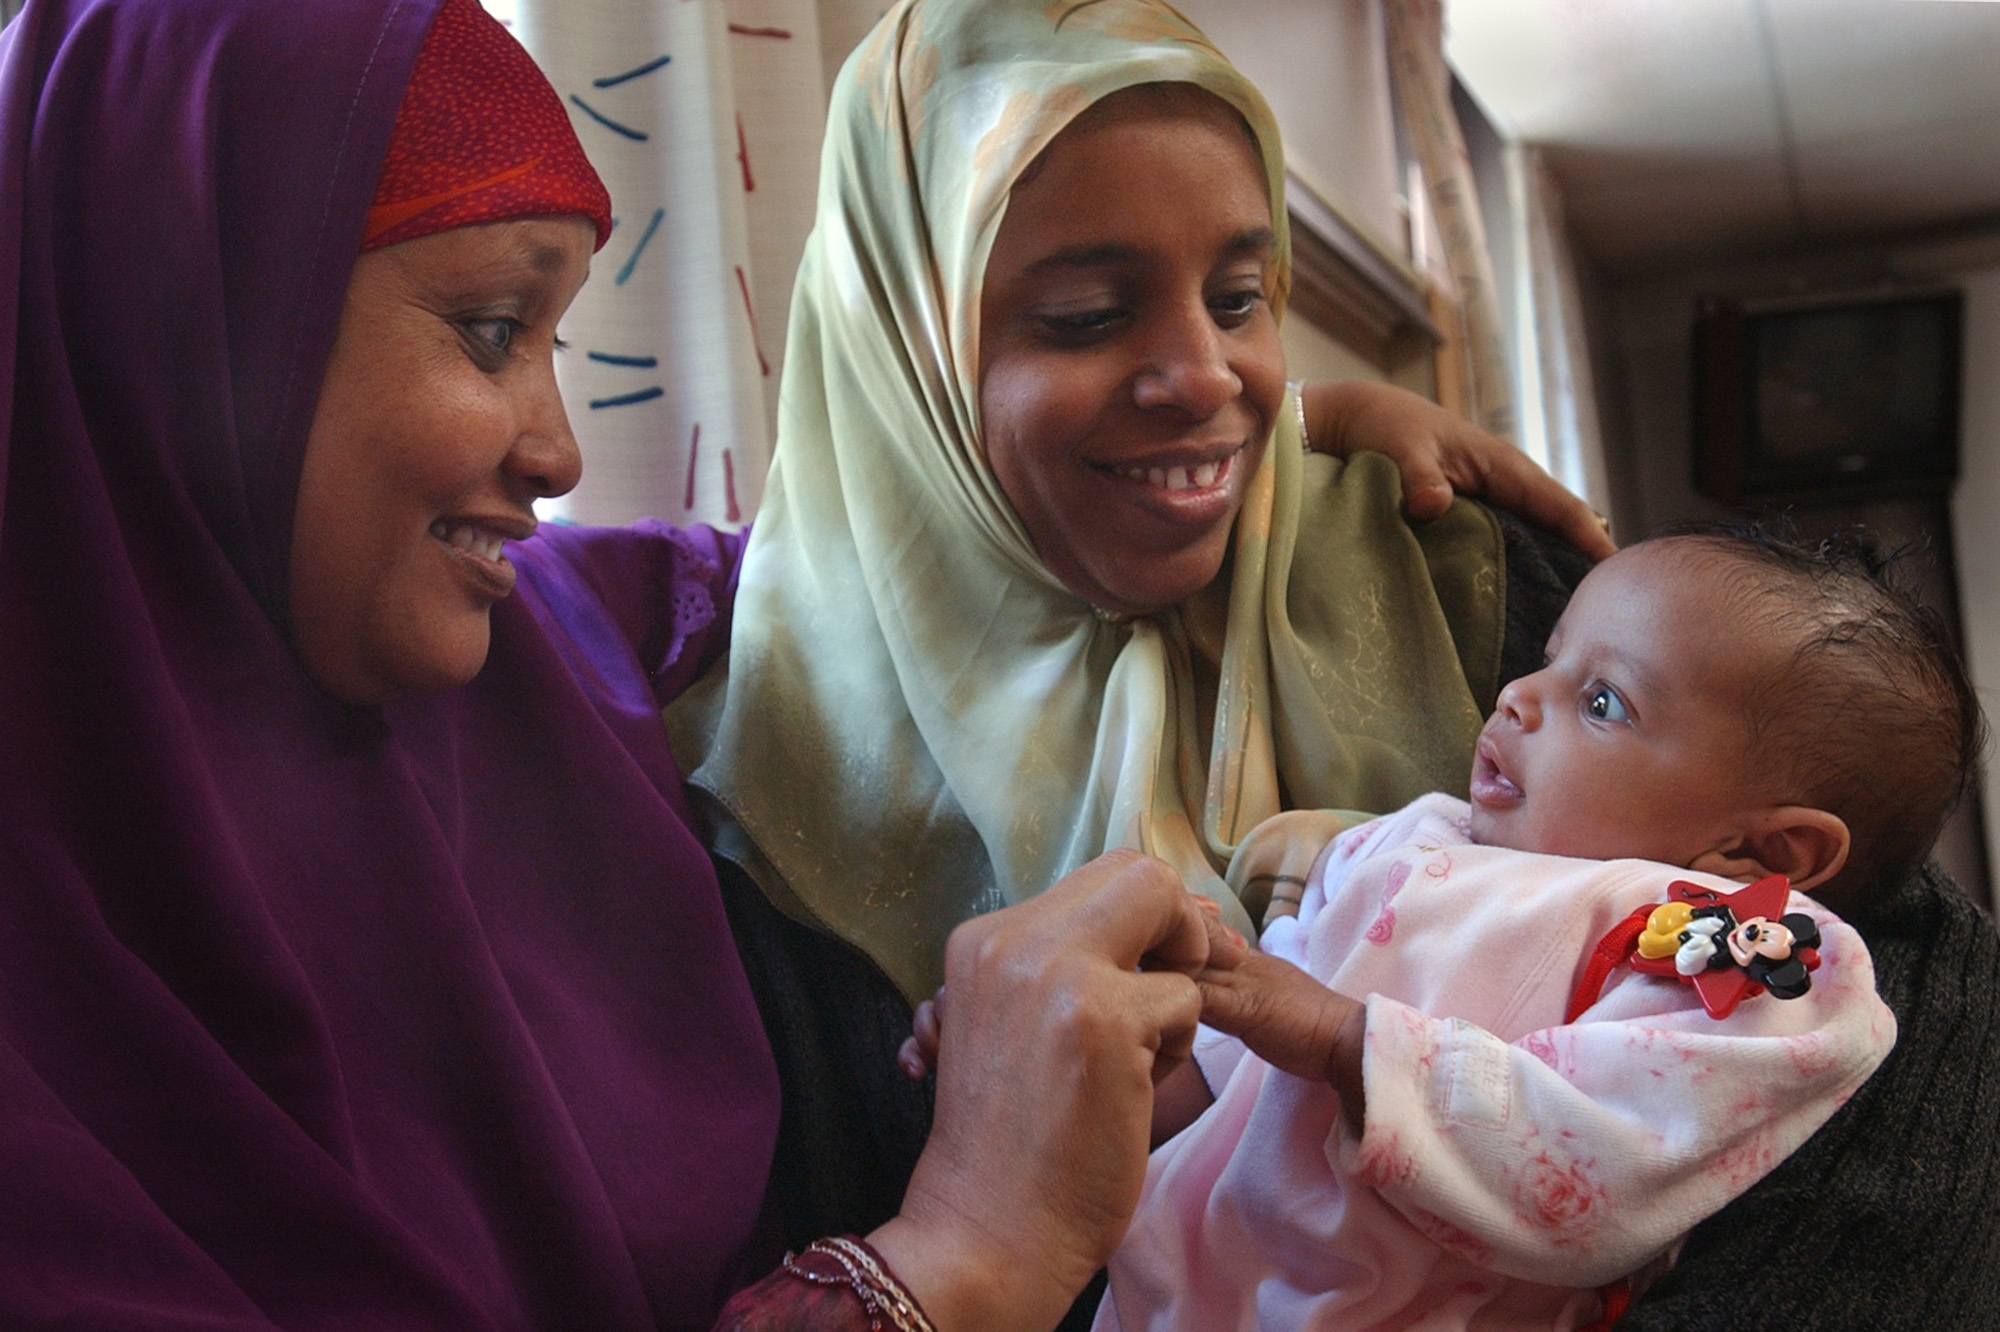 http://Community-Based%20Doulas%20and%20Midwives